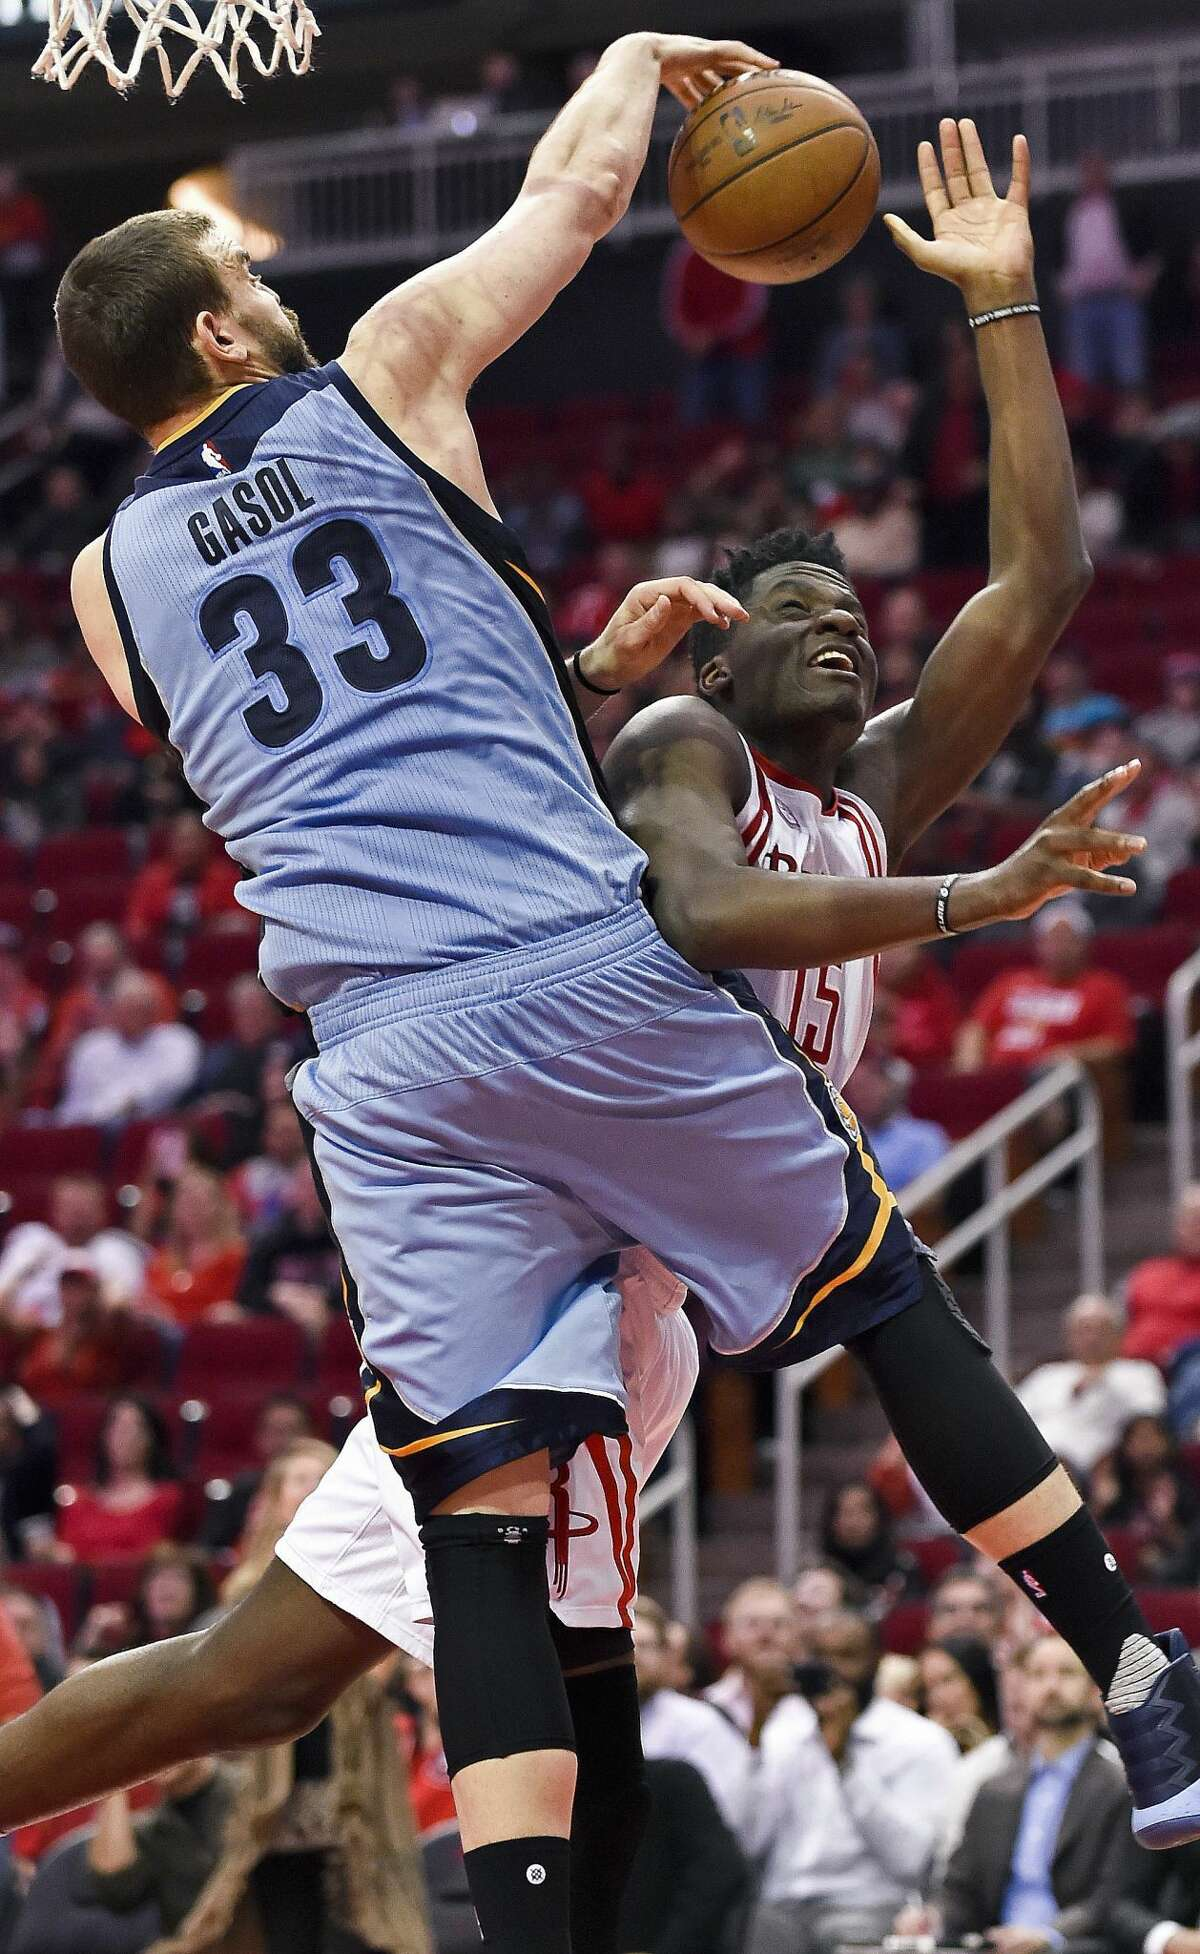 Memphis Grizzlies center Marc Gasol (33) blocks the shot of Houston Rockets center Clint Capela during the second half of an NBA basketball game, Saturday, March 4, 2017, in Houston. Houston won 123-108. (AP Photo/Eric Christian Smith)